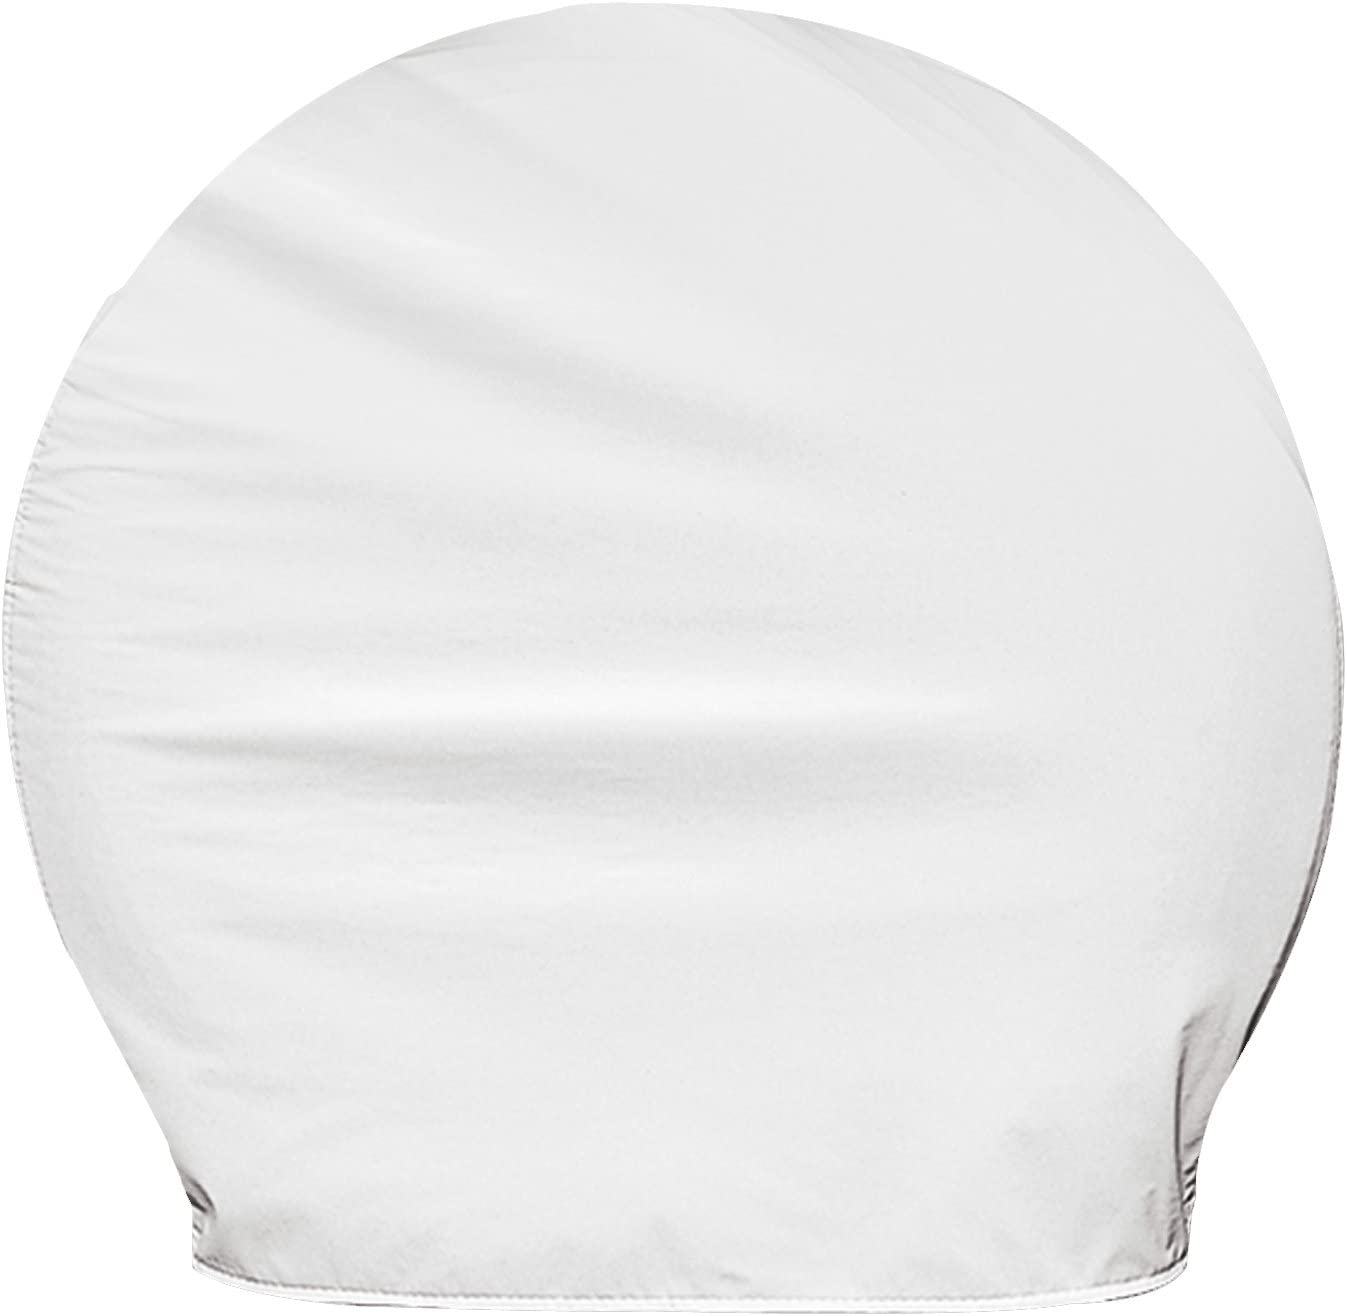 "ADCO 3949 Ultra Tyre Gard Wheel Cover,White,40"" - 42"""